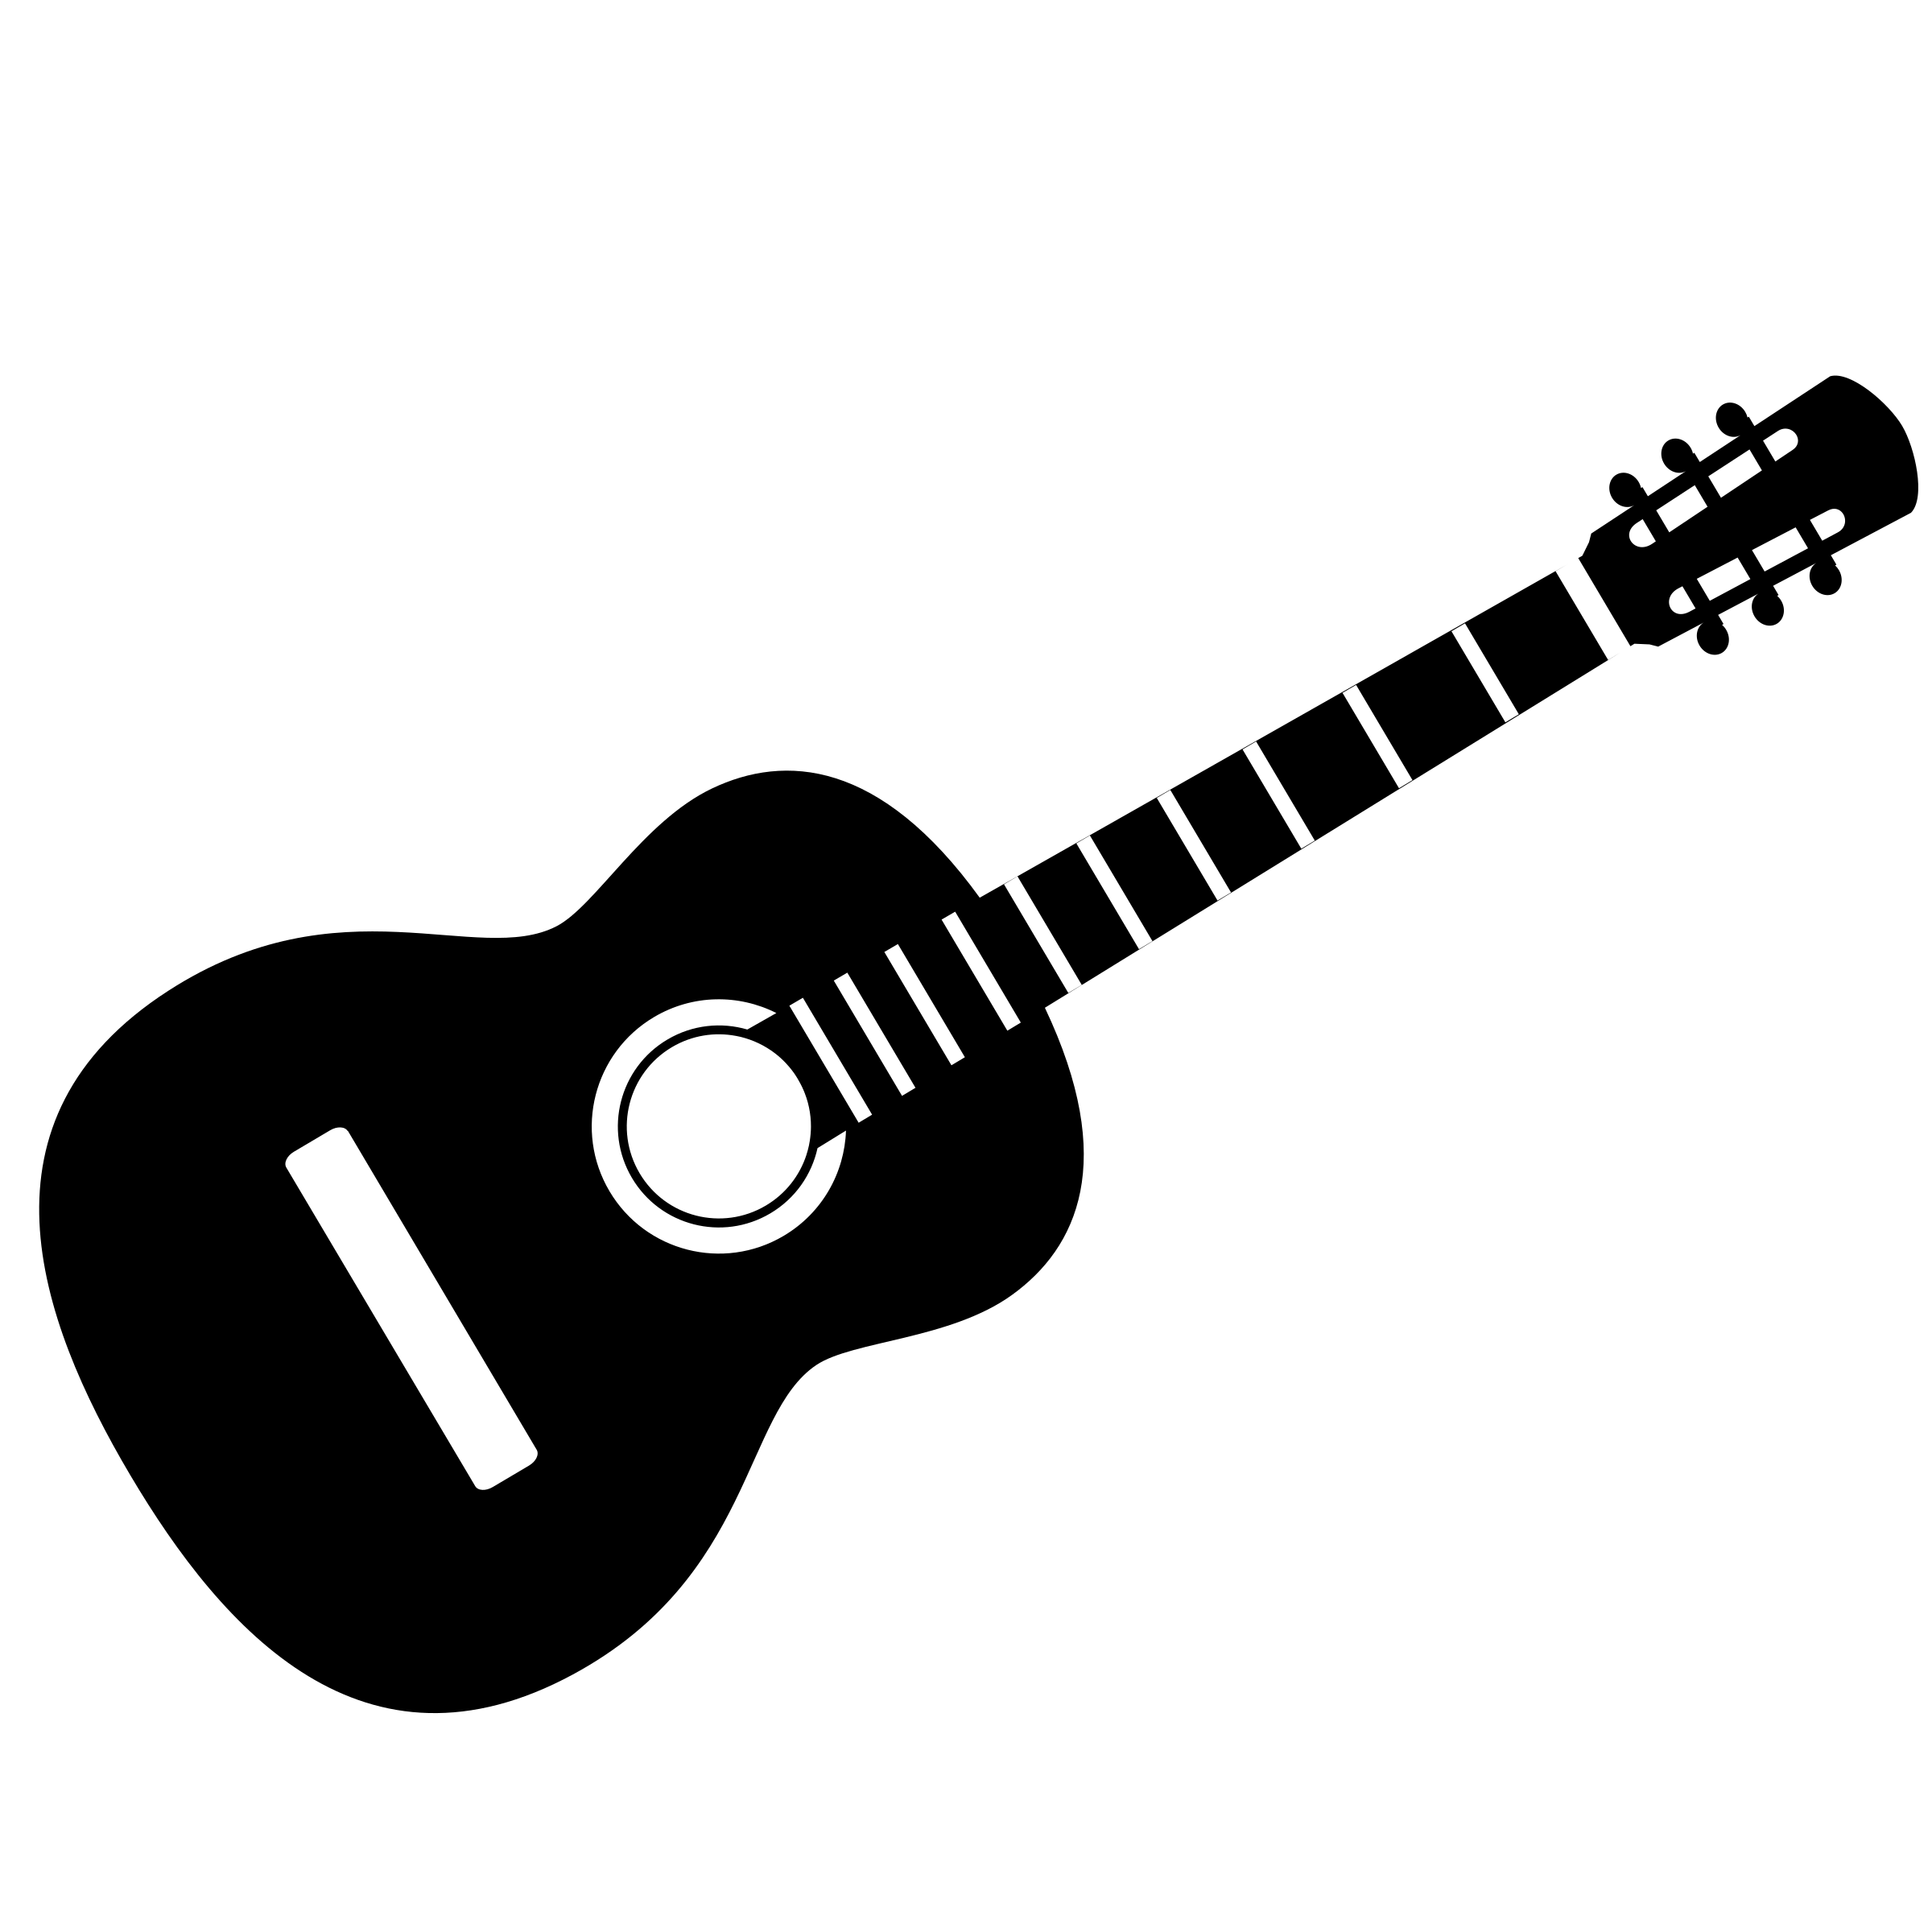 guitar-icon-png-30.png